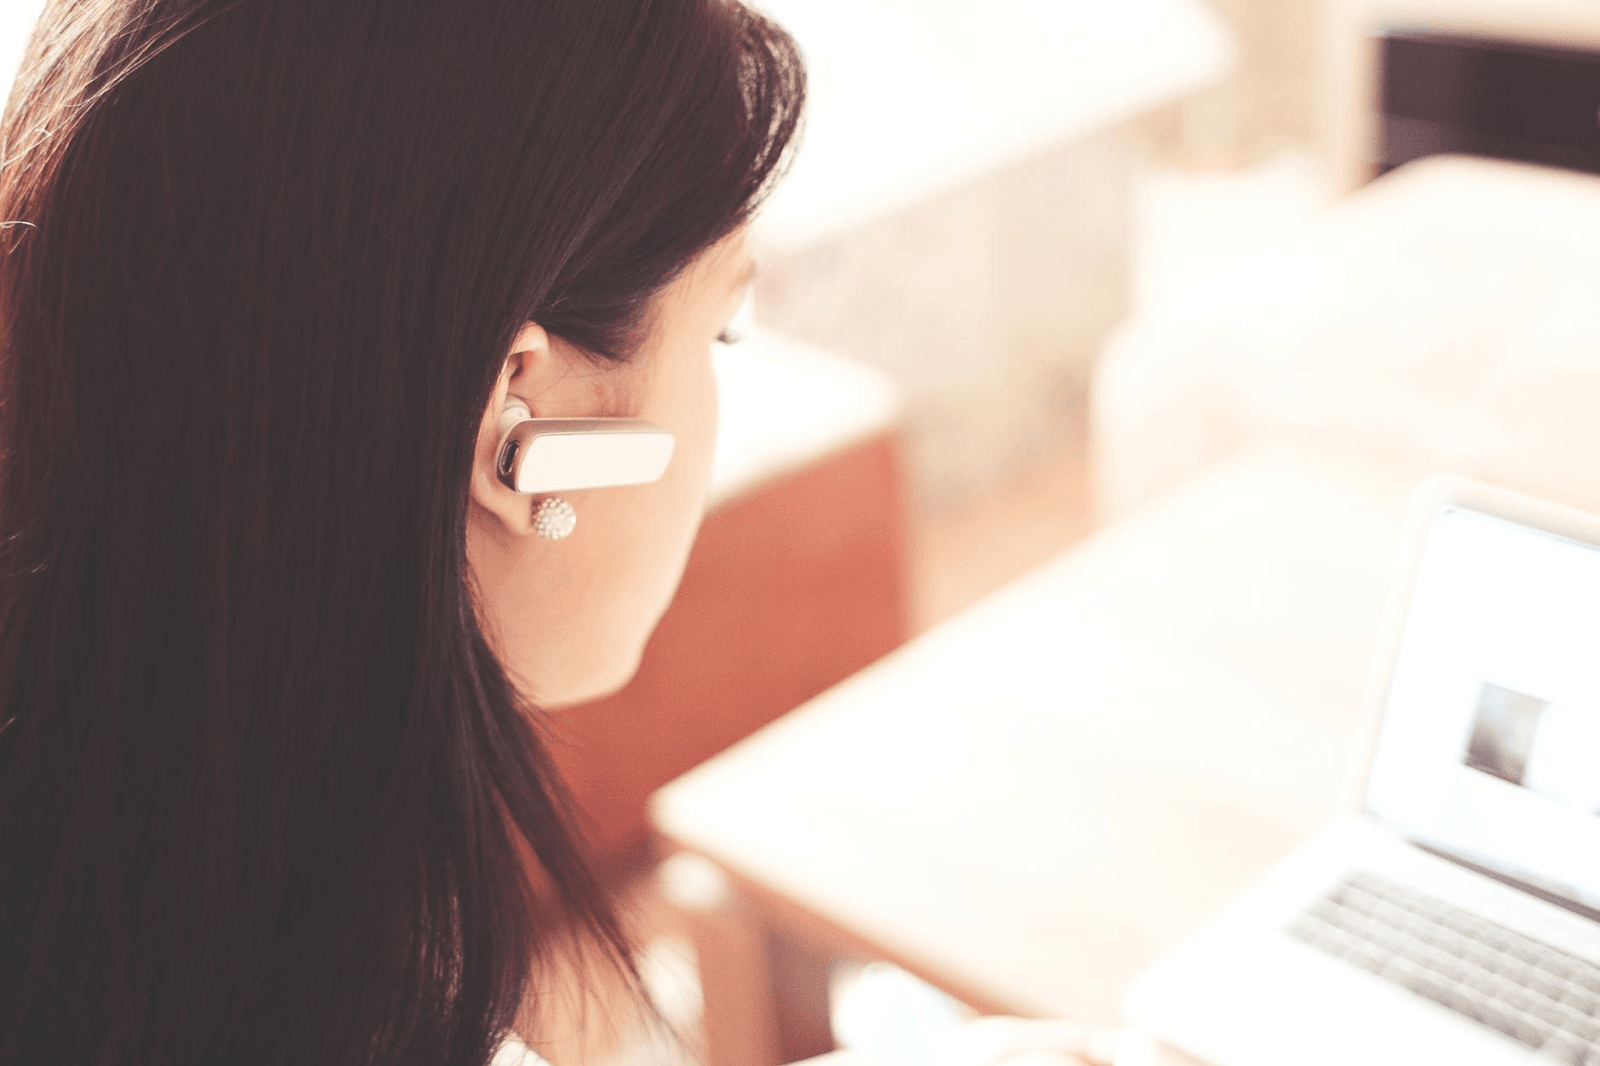 A woman with an earpiece in her ear, working at a computer.